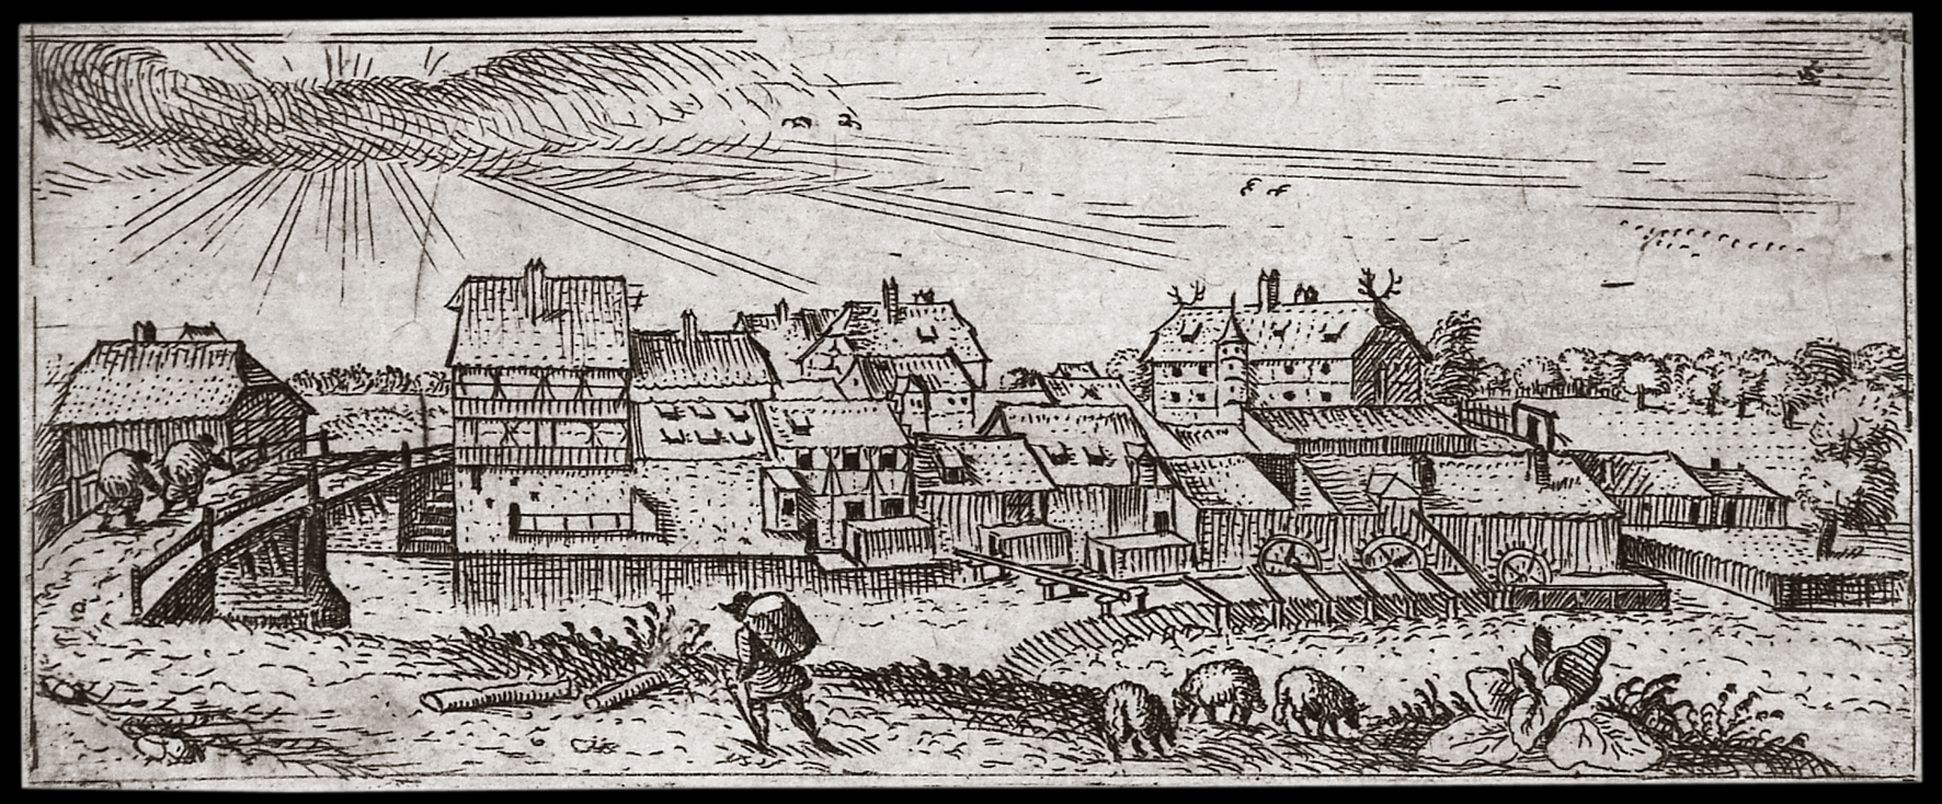 City view of Stein